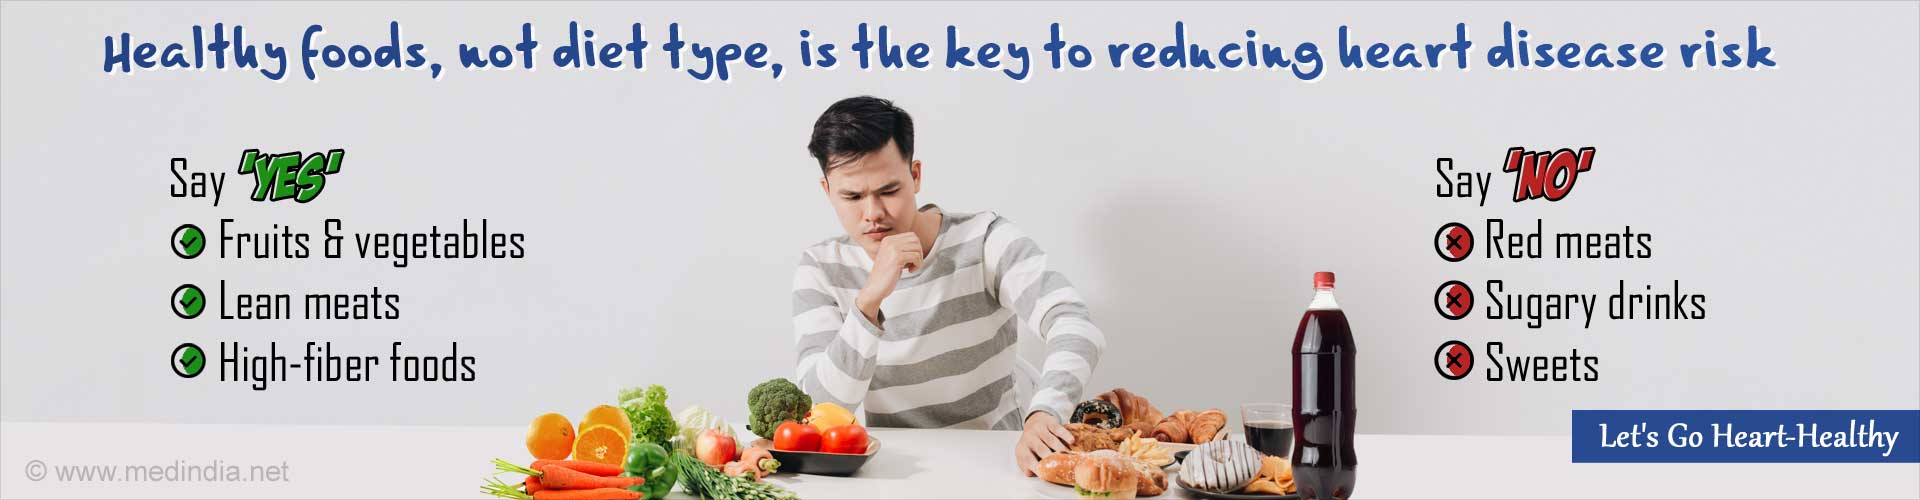 Eating Healthy Foods More Important Than Type of Diet to Lower Heart Disease Ris